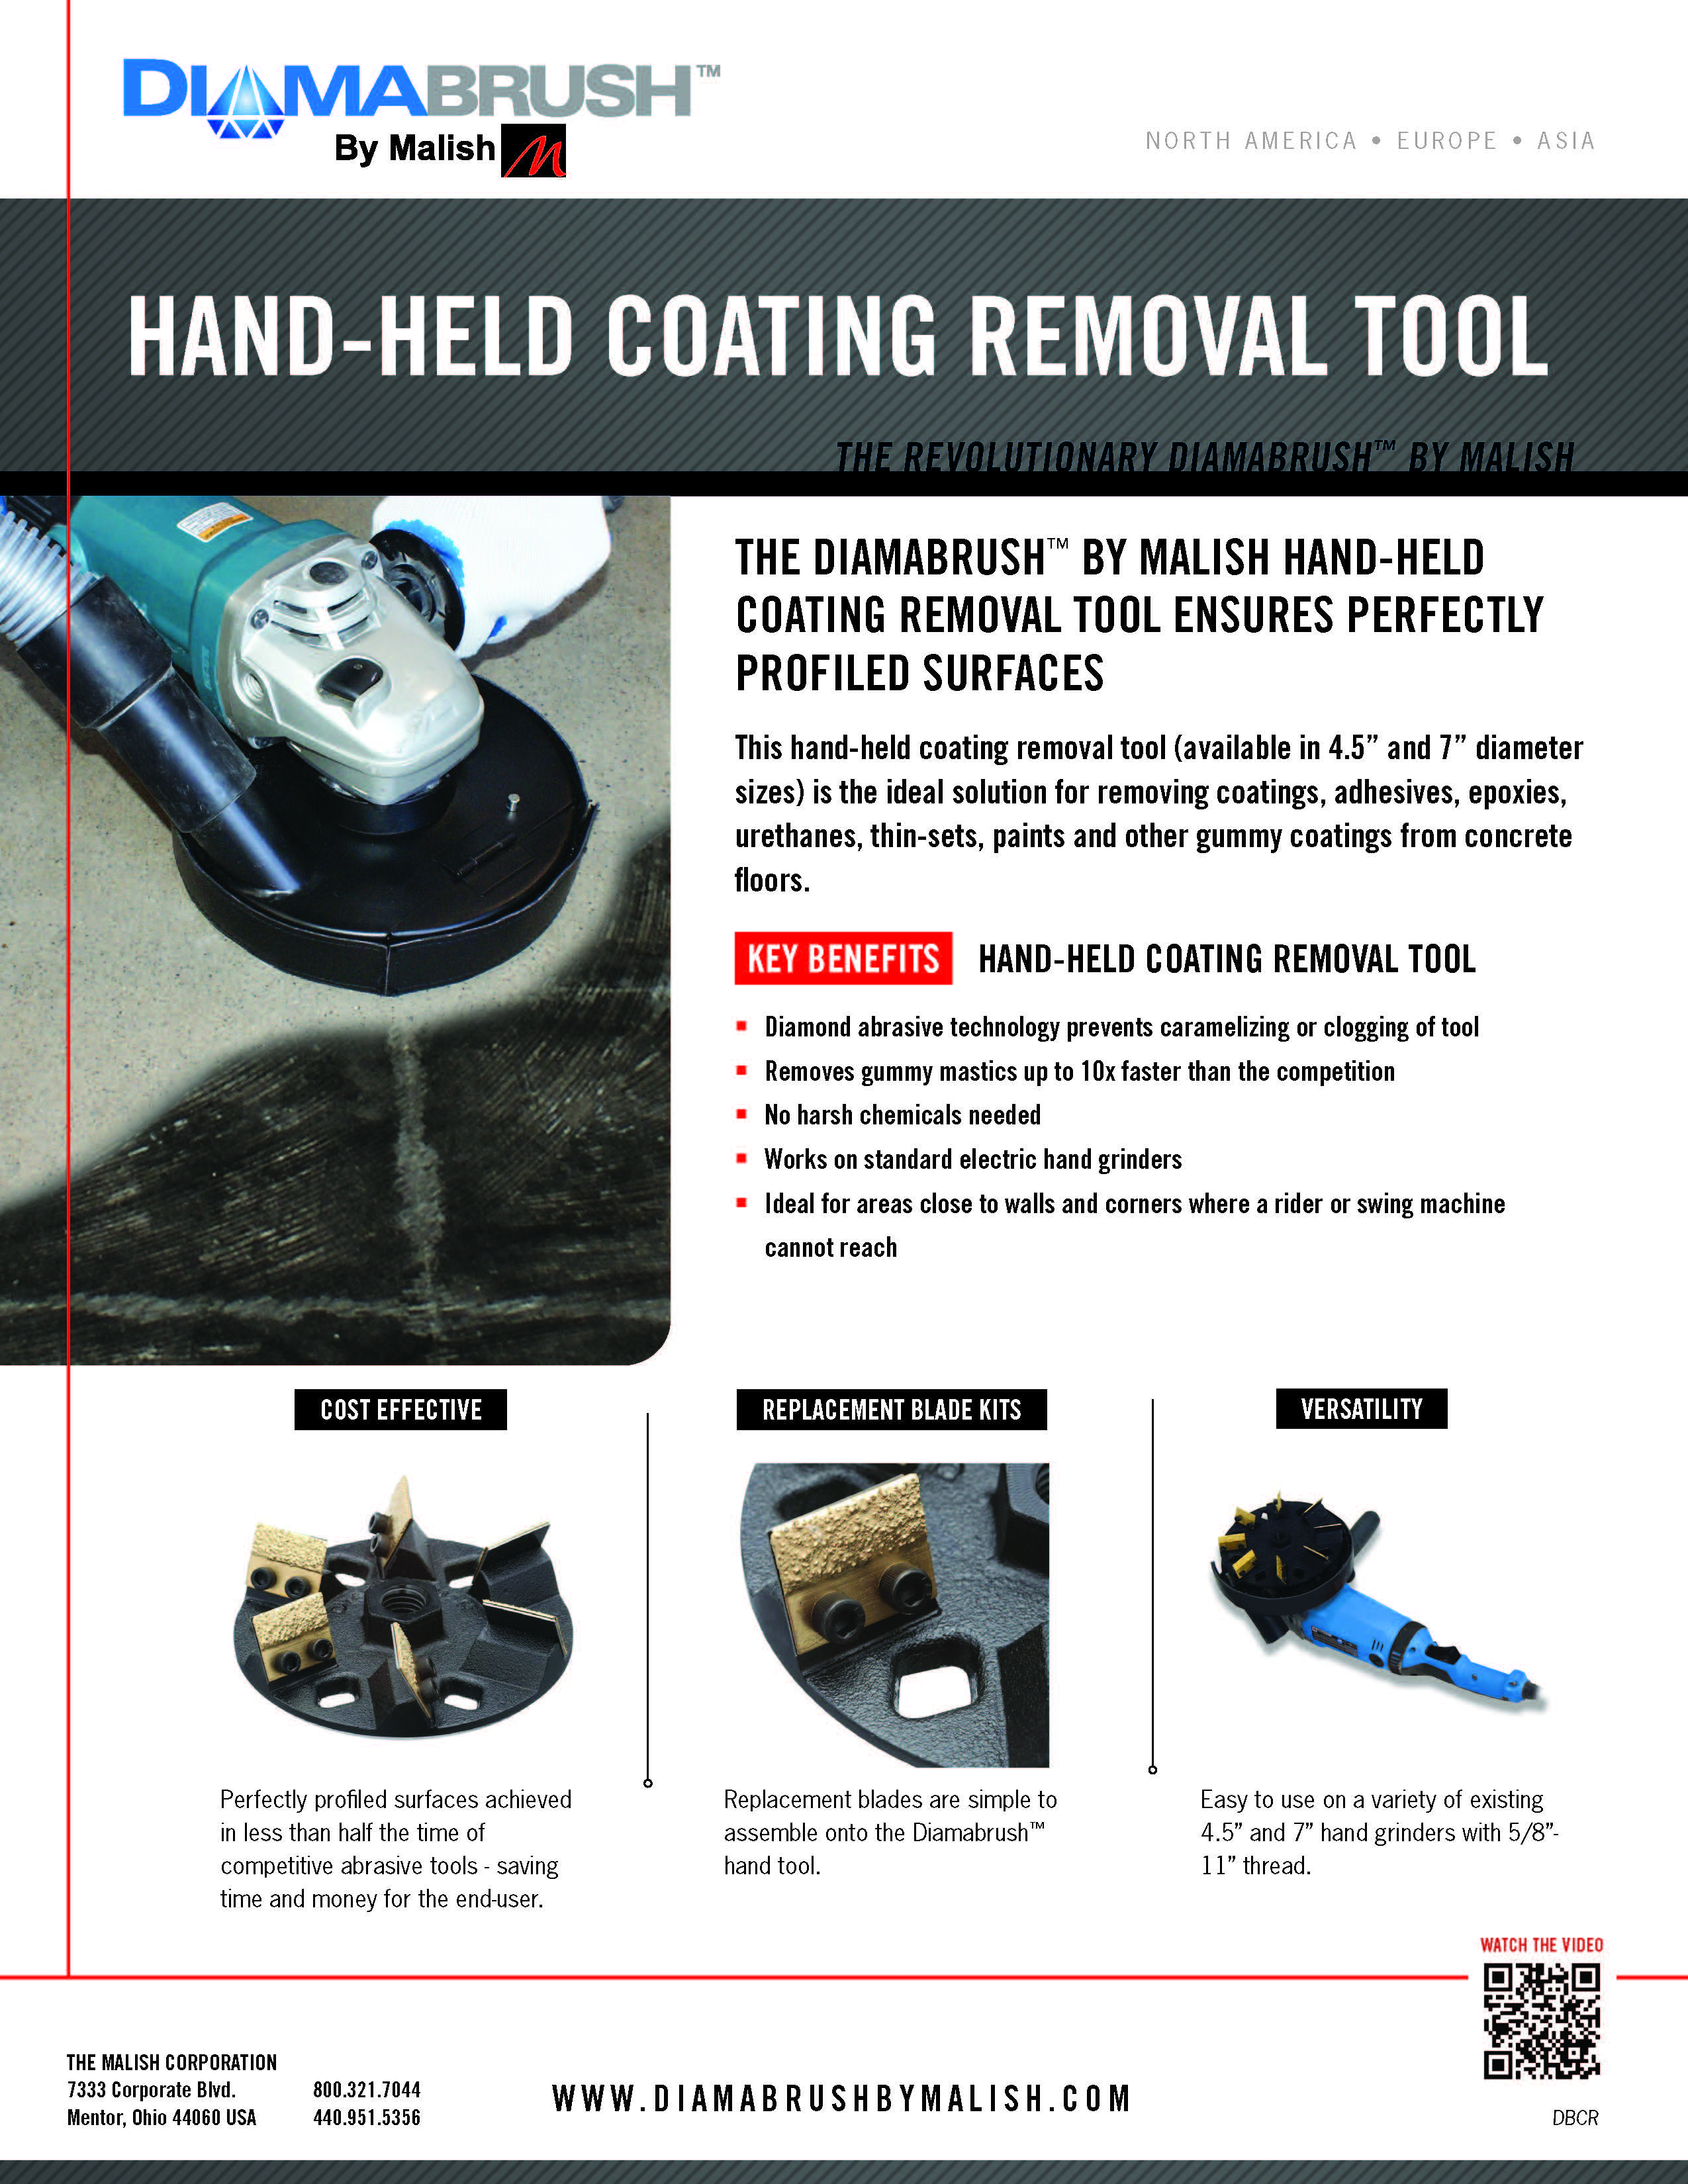 Handheld Coating Removal Tool